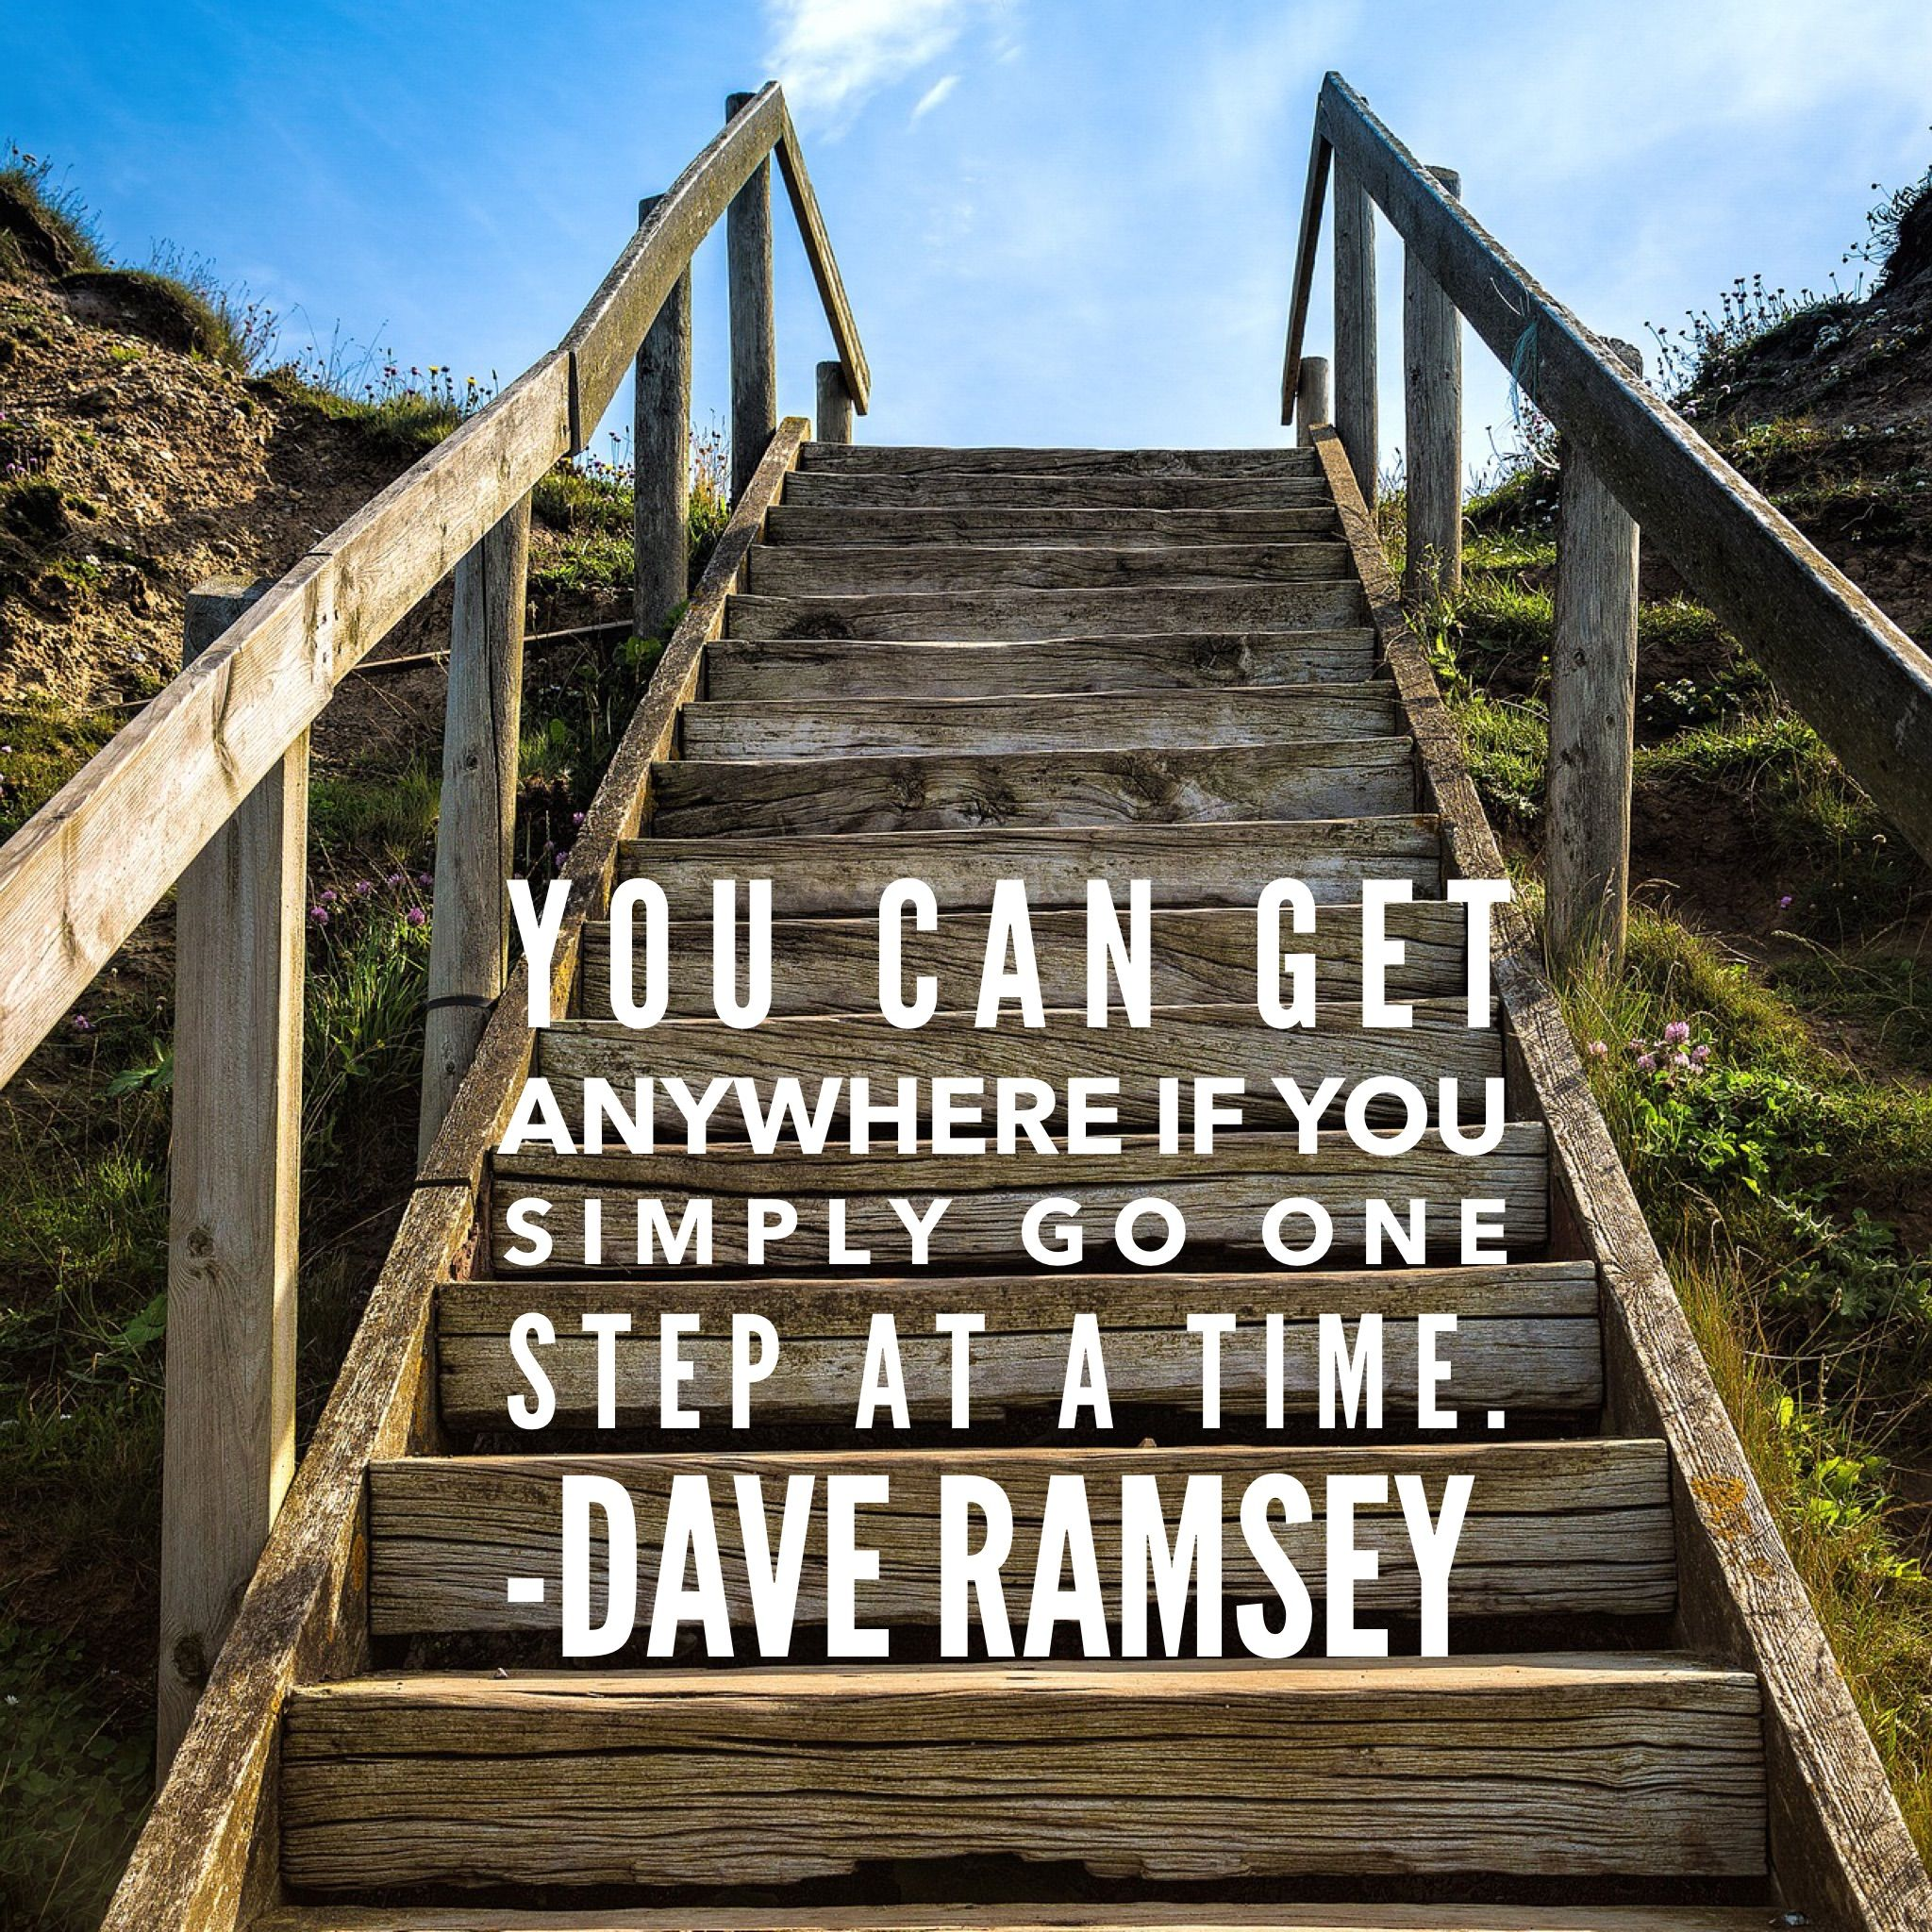 You Can Get Anywhere If You Simply Go One Step At A Time